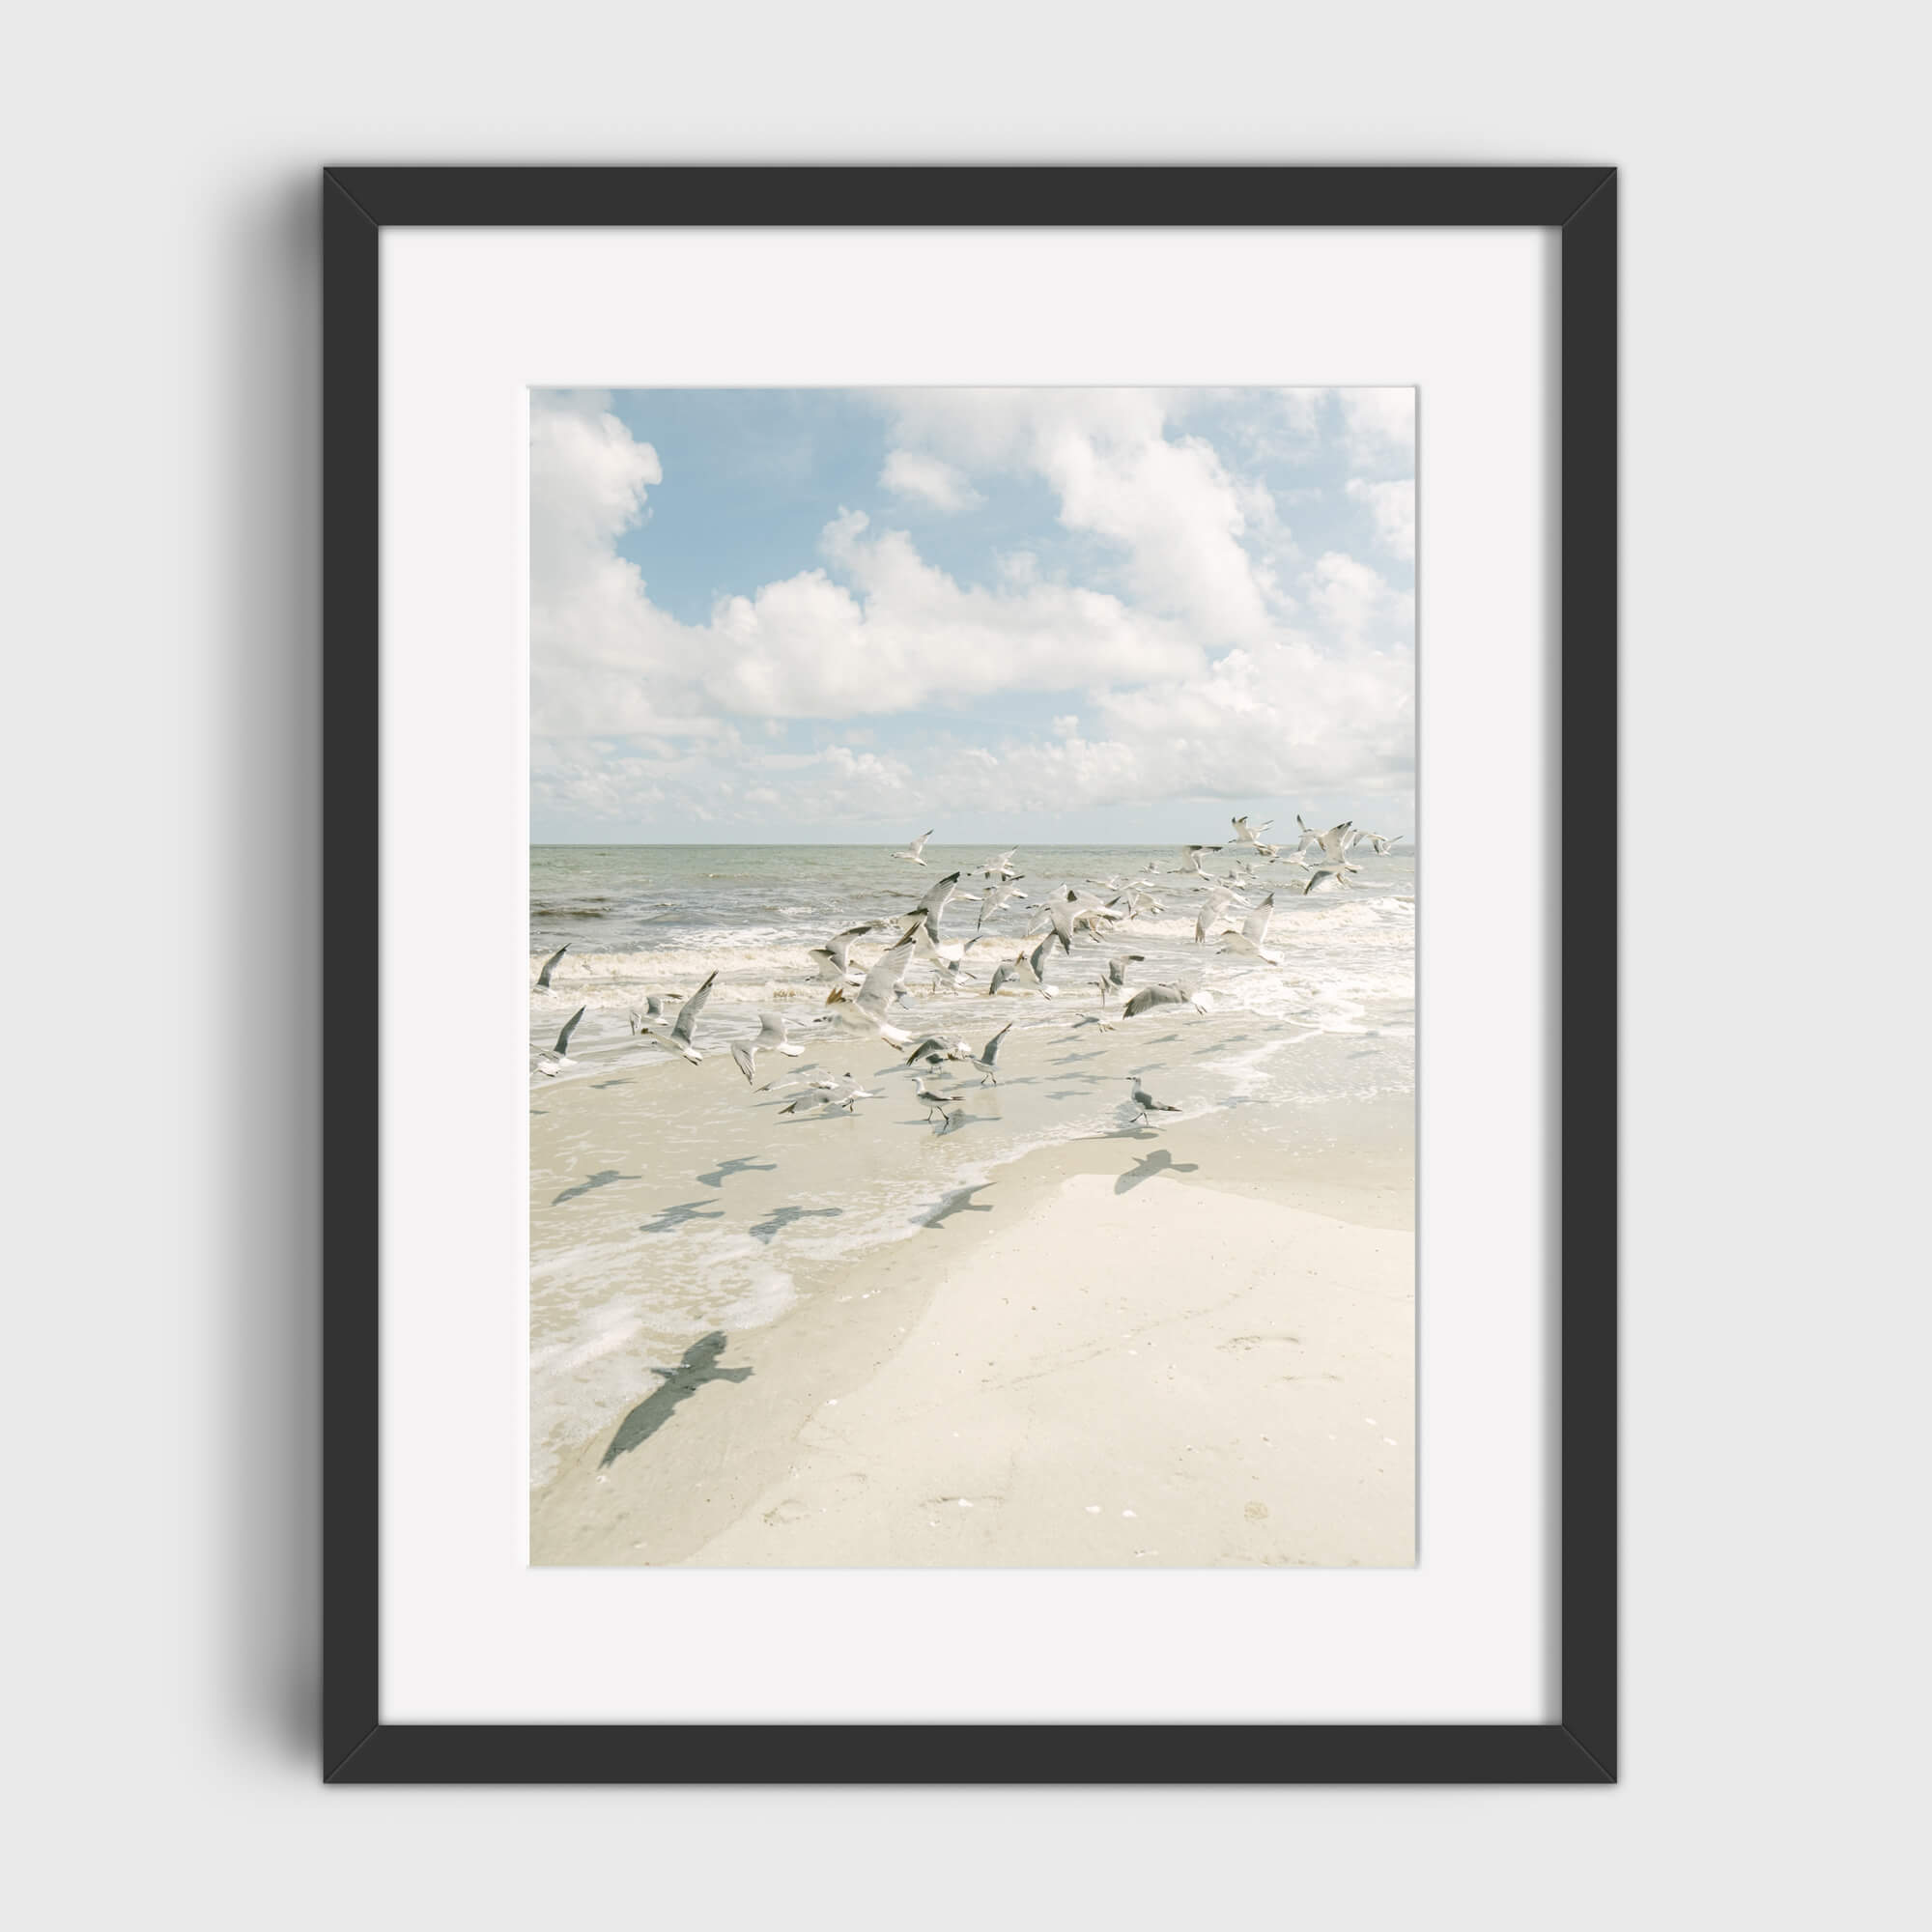 Seagulls - Care Studio Prints